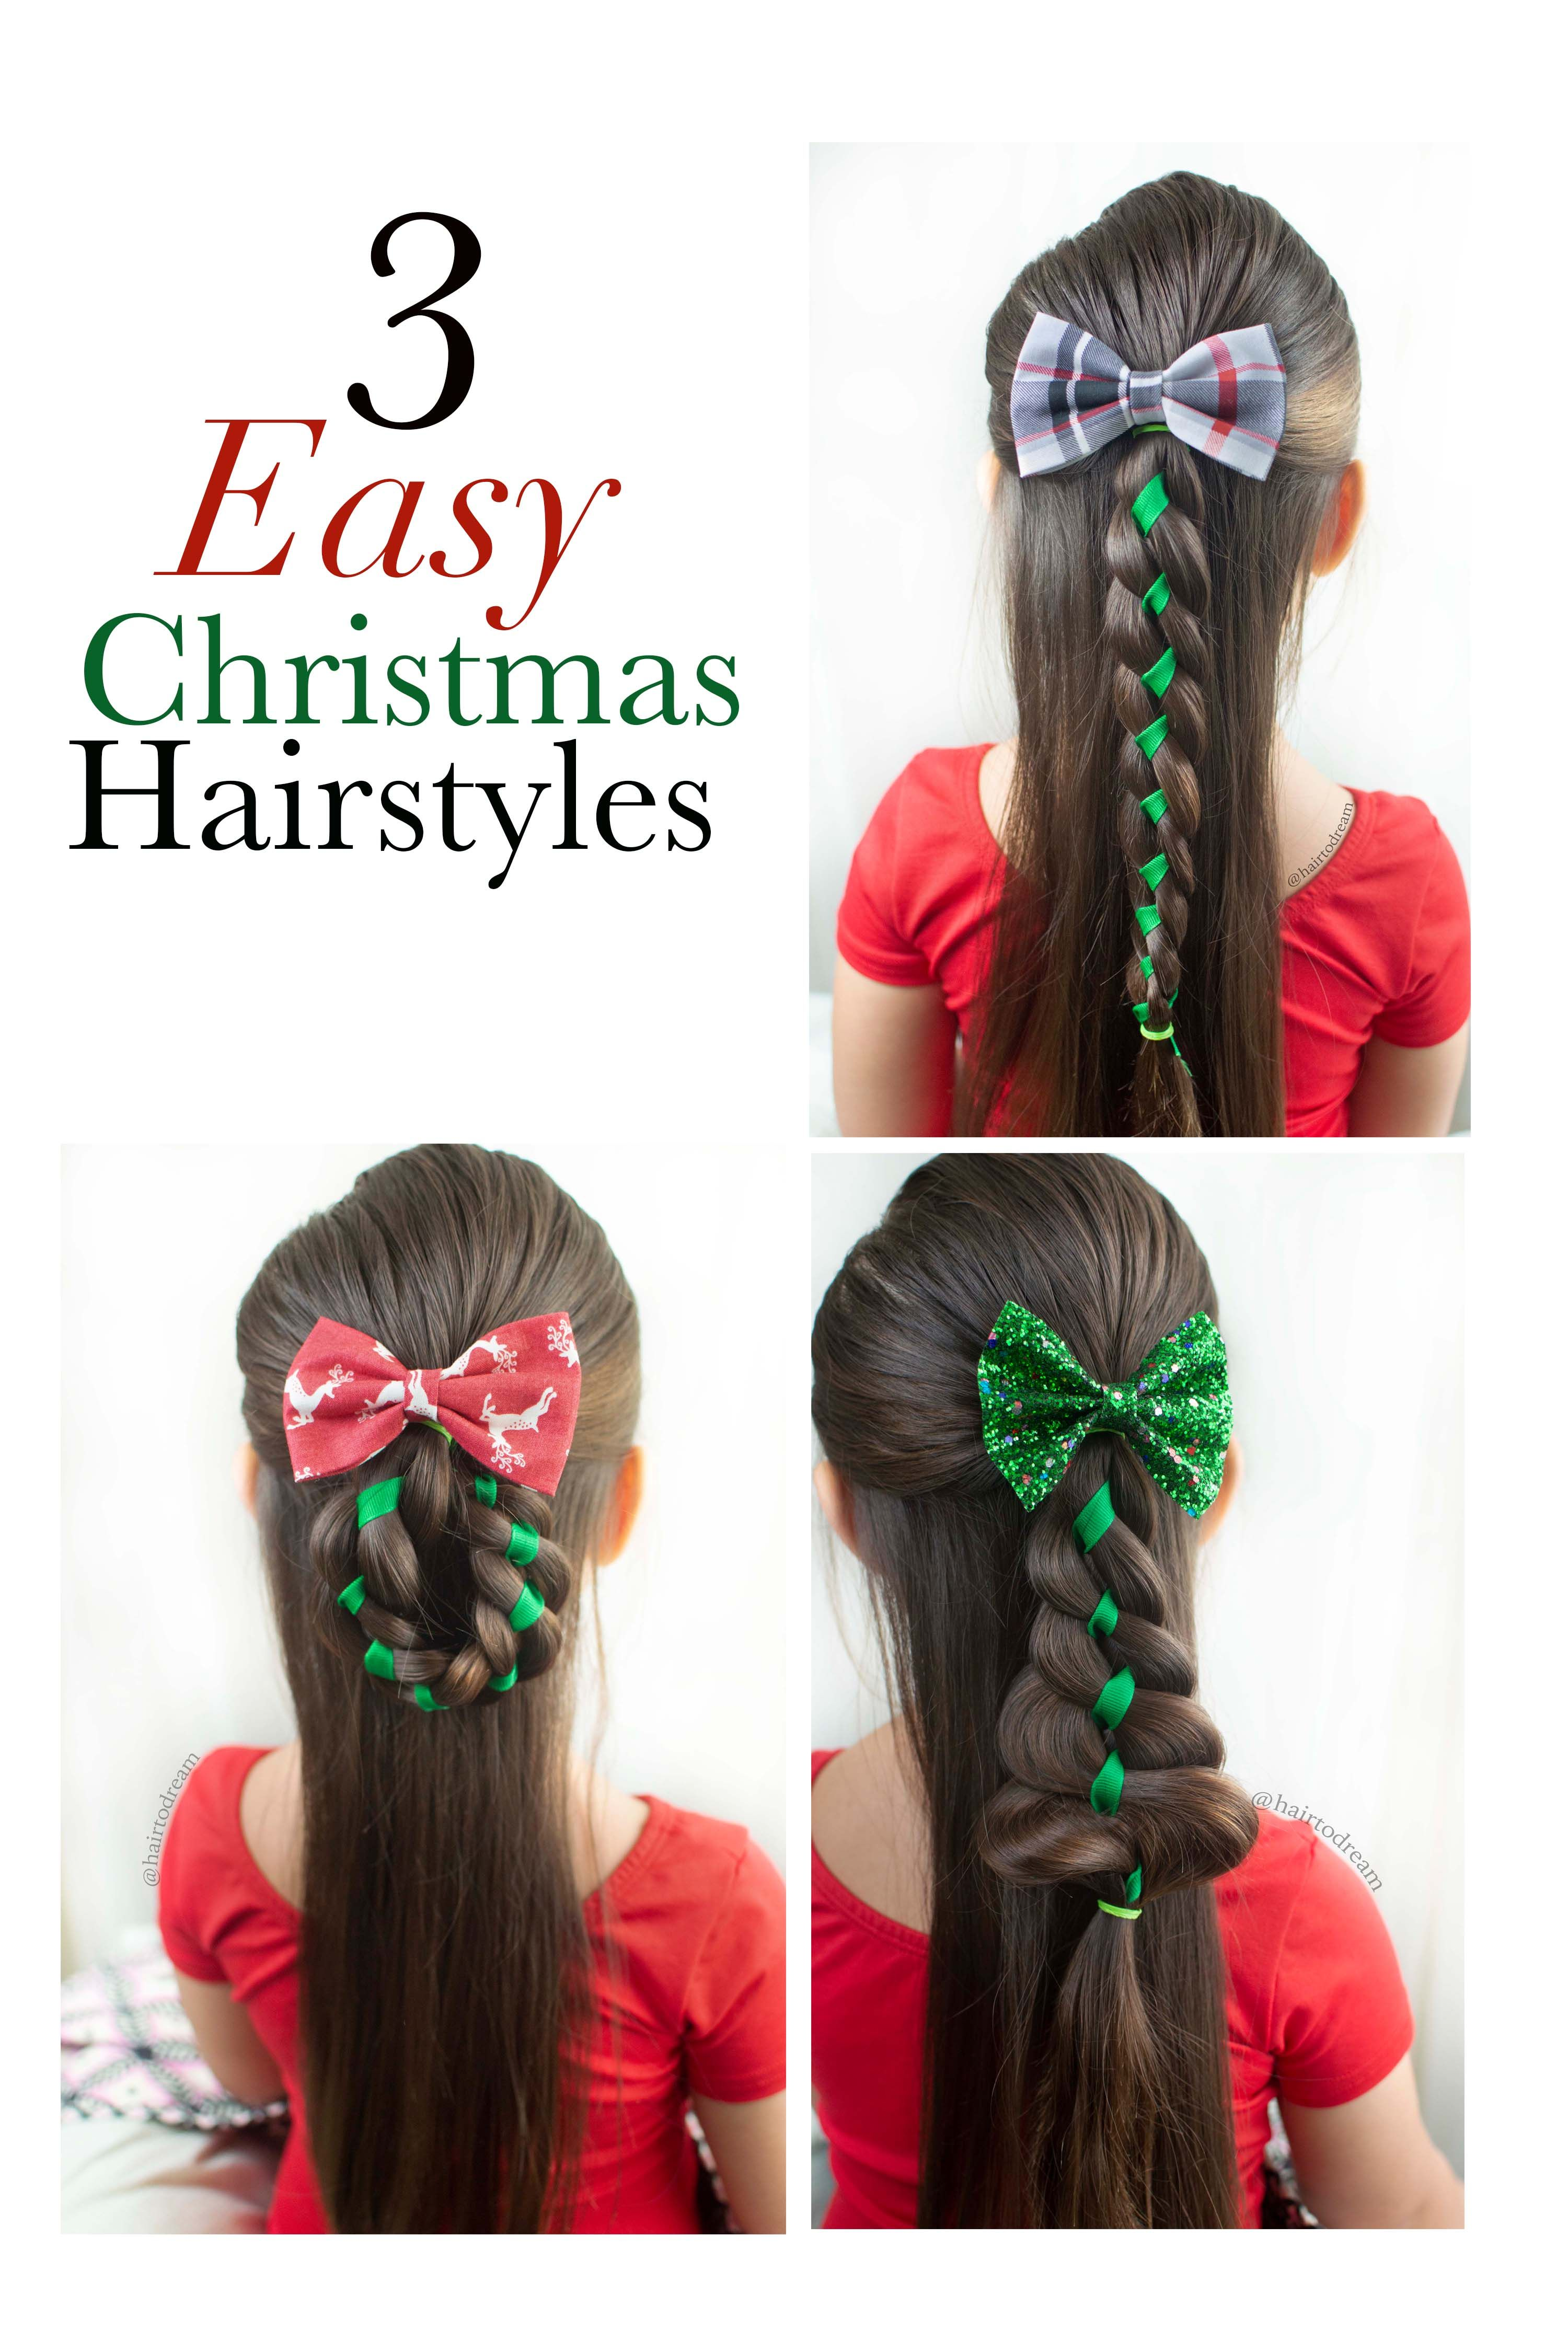 Christmas Hairstyles For Little Girls Hair Styles Christmas Hairstyles Kids Hairstyles